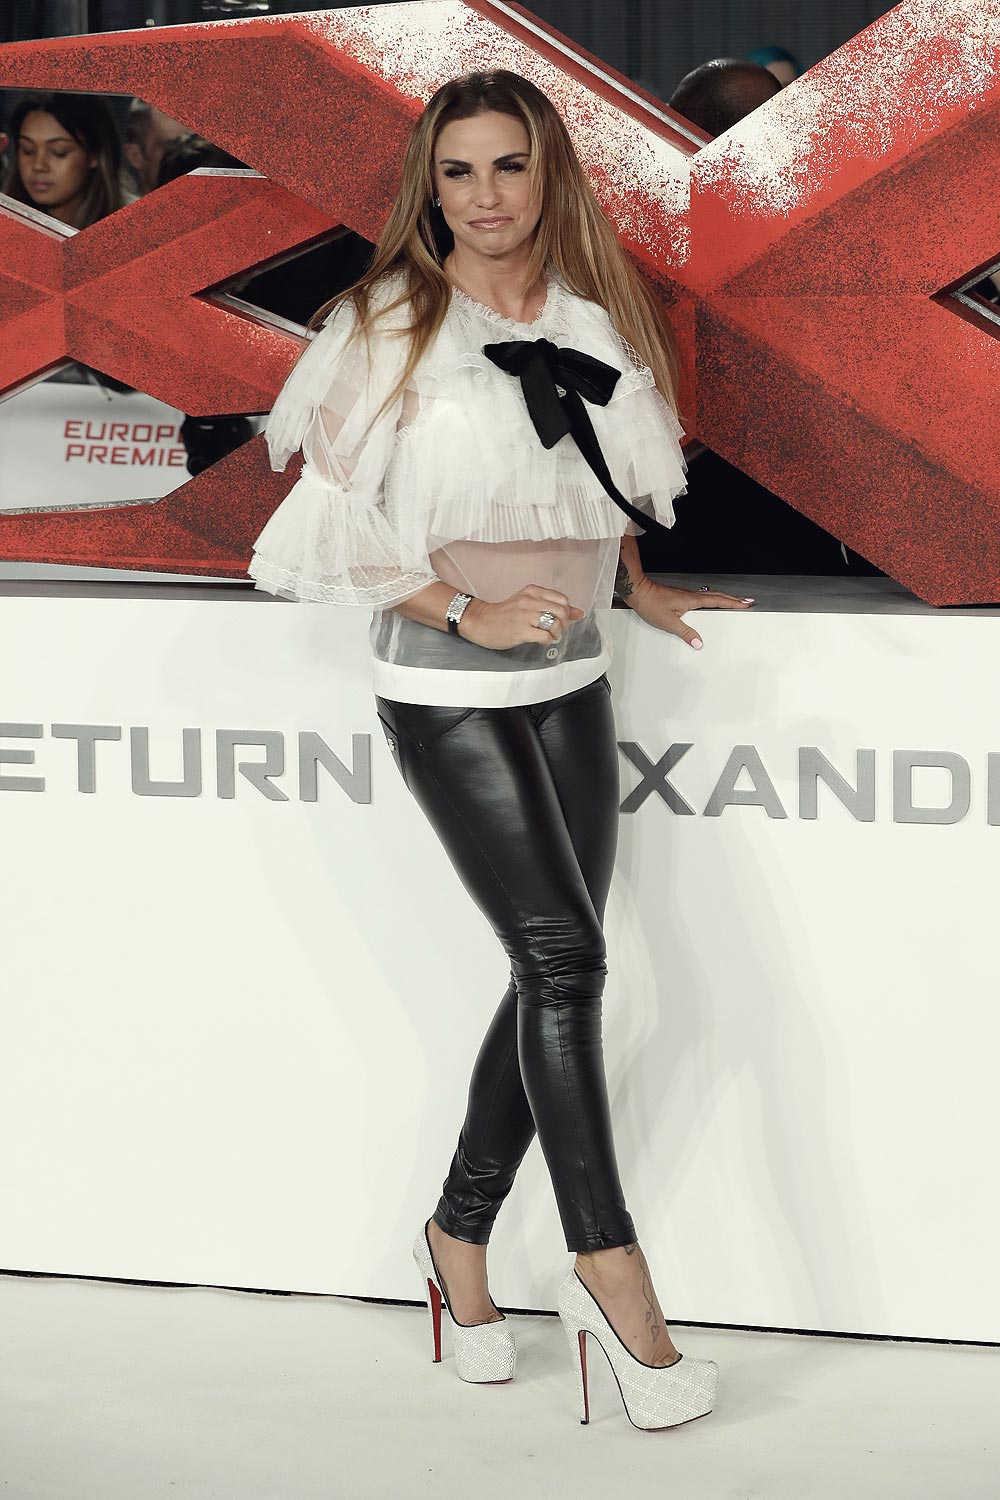 Katie Price attends the European premiere of xXx Return of Xander Cage